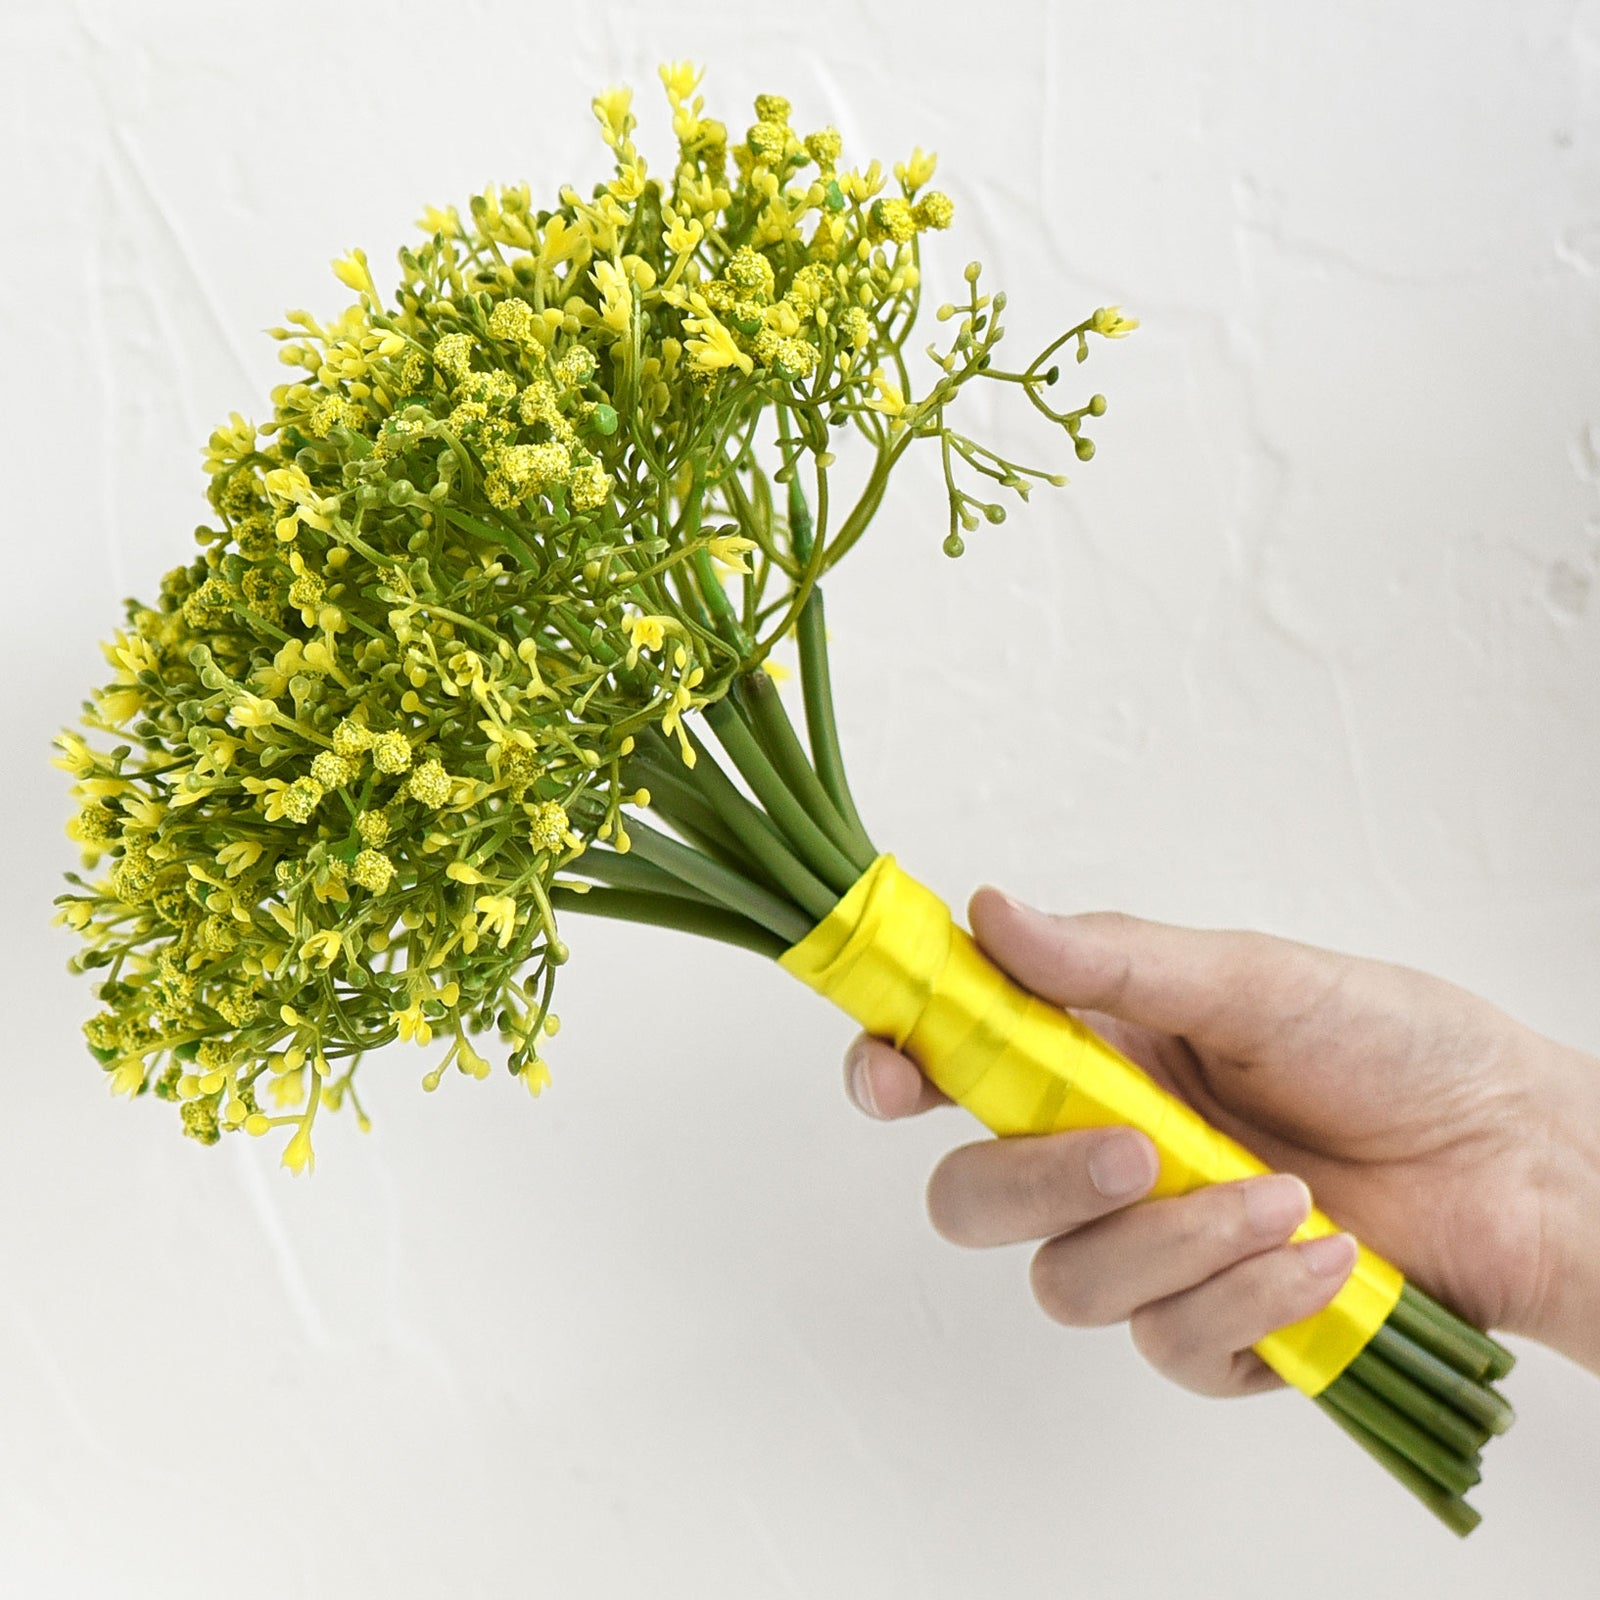 Baby's Breath Artificial Flowers Bouquet 1 Bundle (15 PCS) Baby's Breath Gypsophila 2 for Floral Arrangement, Wedding Flower Bouquet Décor (Yellow)